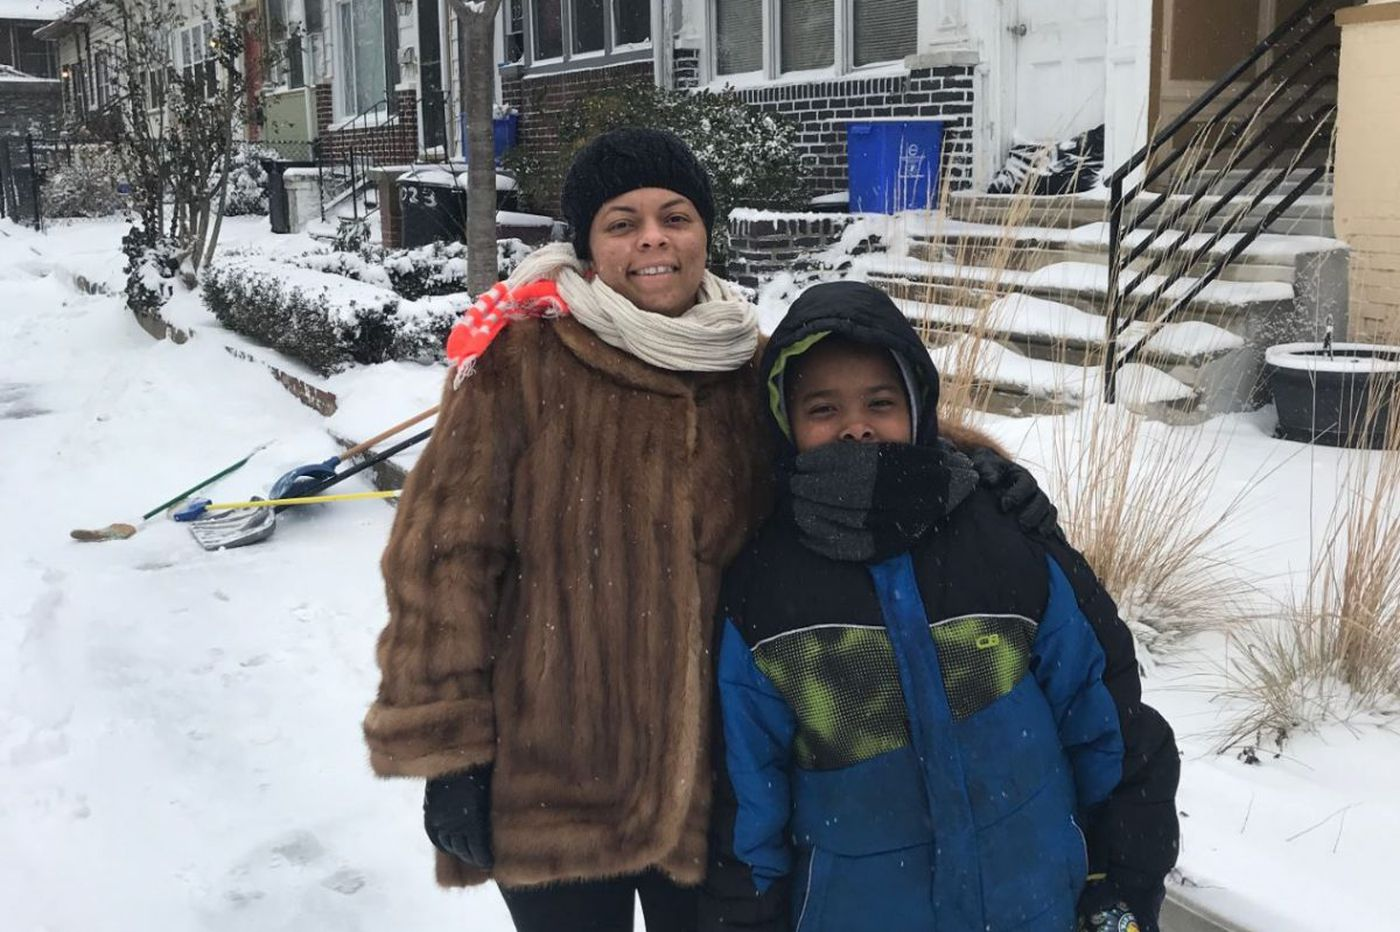 West Philly kid takes neighborhood shoveling to the next level